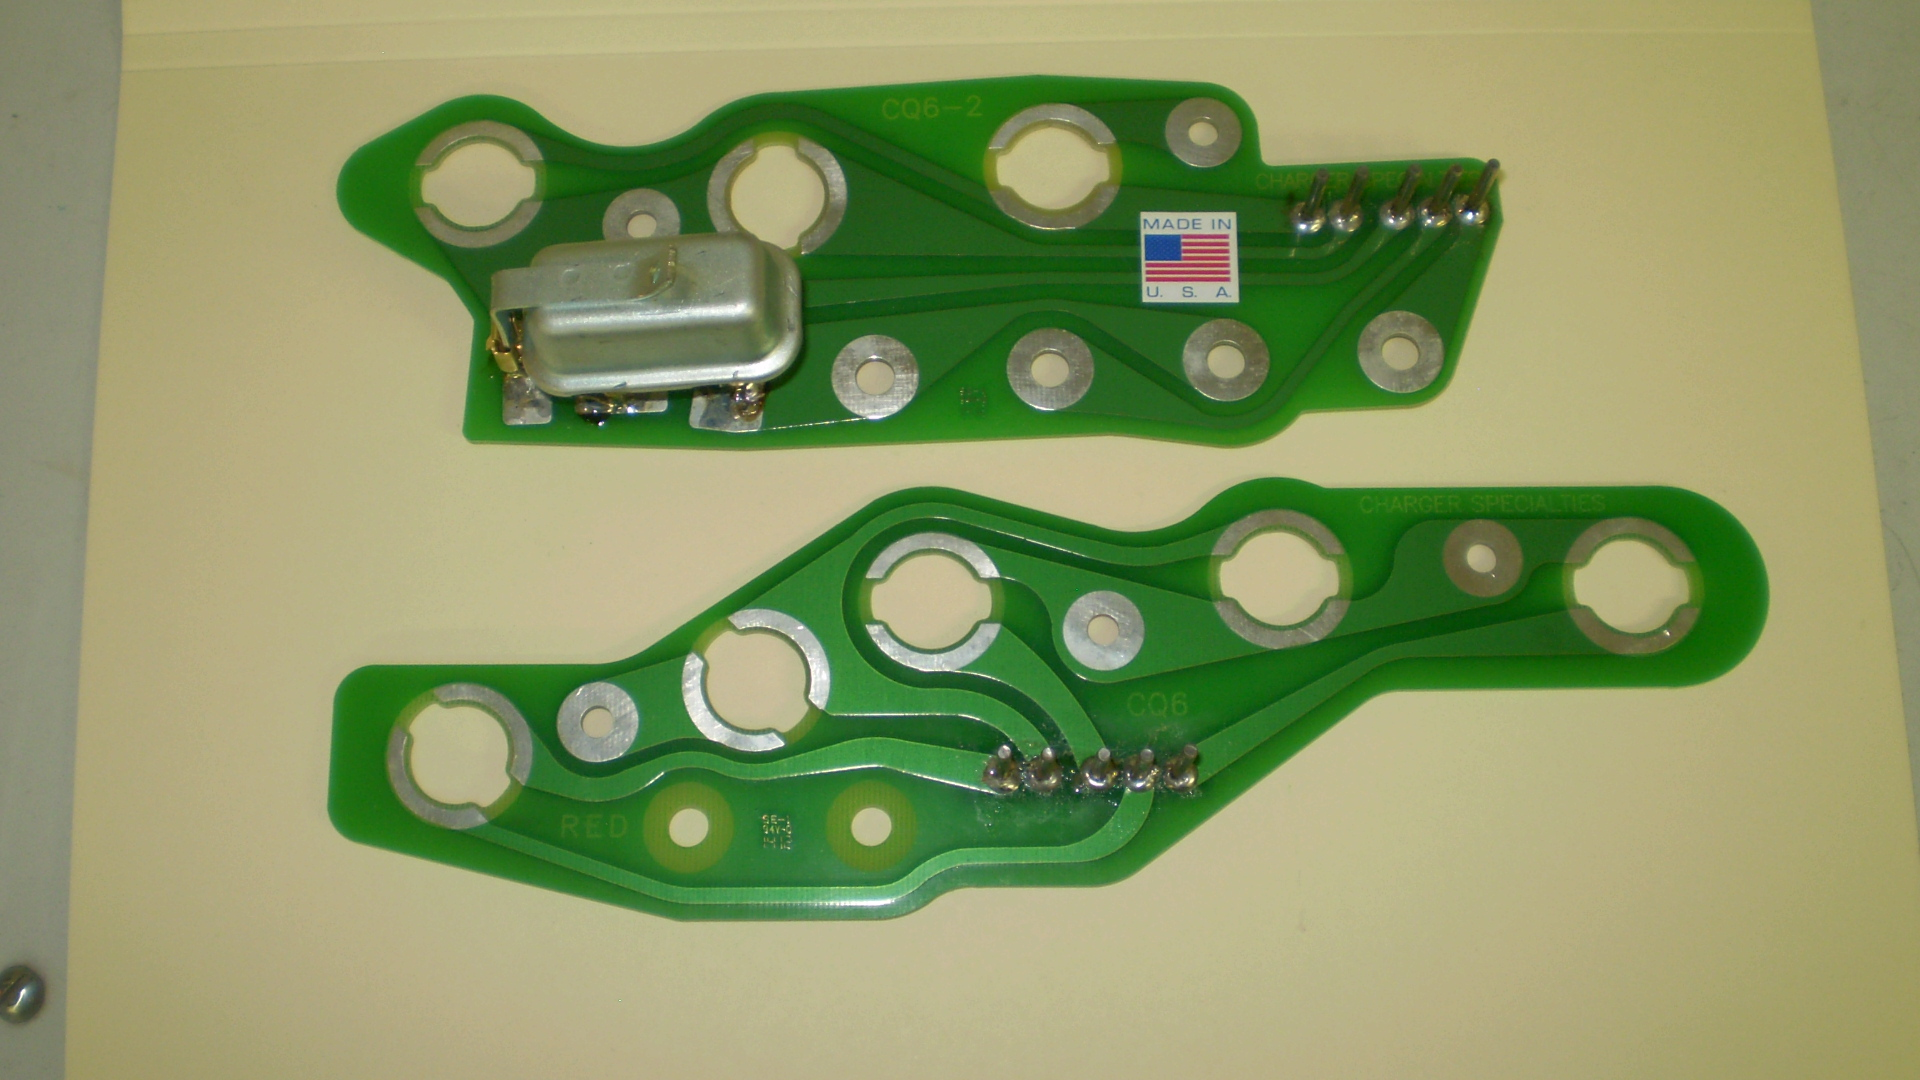 67-71 A BODY DART, SCAMP NON RALLY CIRCUIT BOARD WITH LIMITER